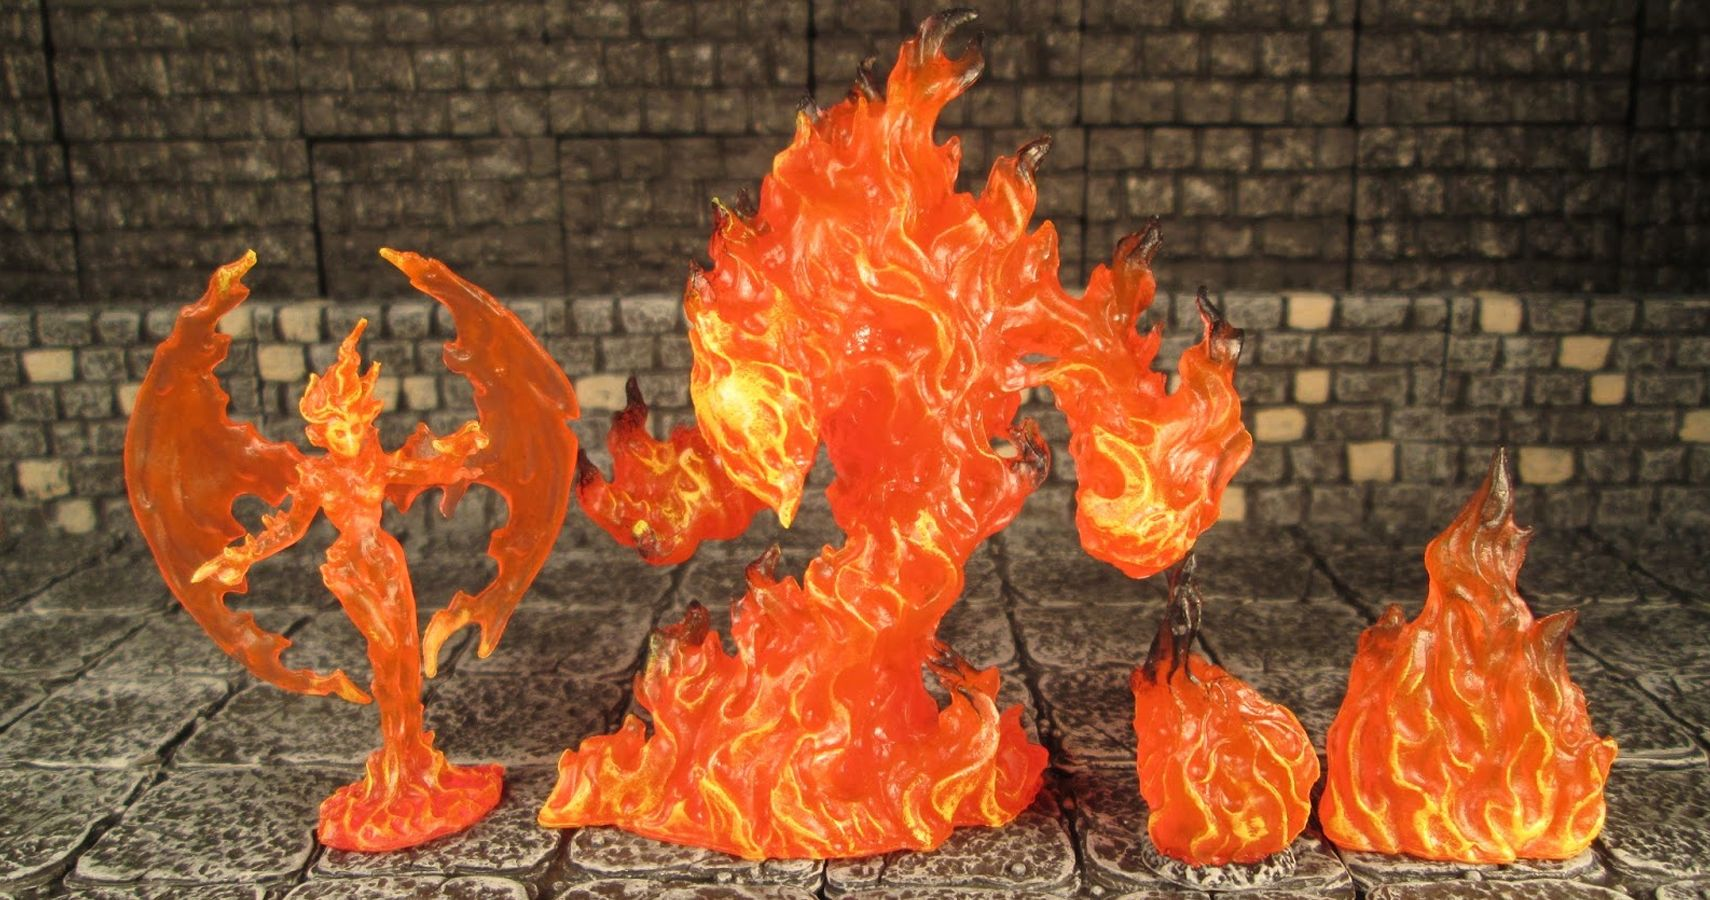 25 Of The Rarest Dungeons And Dragons Miniatures (And What